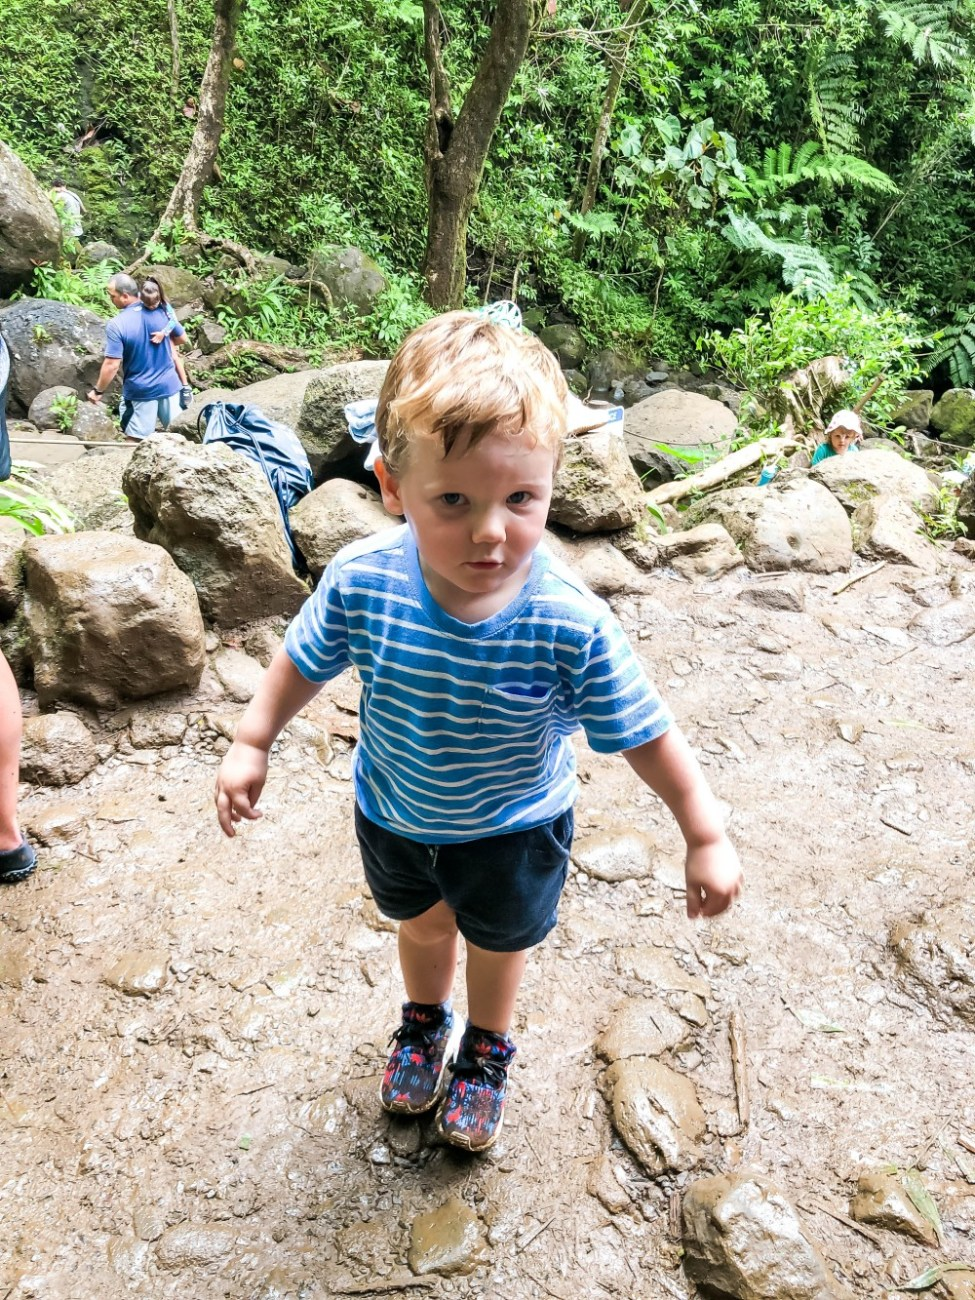 What you need to know about hiking the Manoa Falls Trail. Head on over to the blog to check out all my tips. #manoafalls #manoafallstrail #hikingoahu #oahuhikes